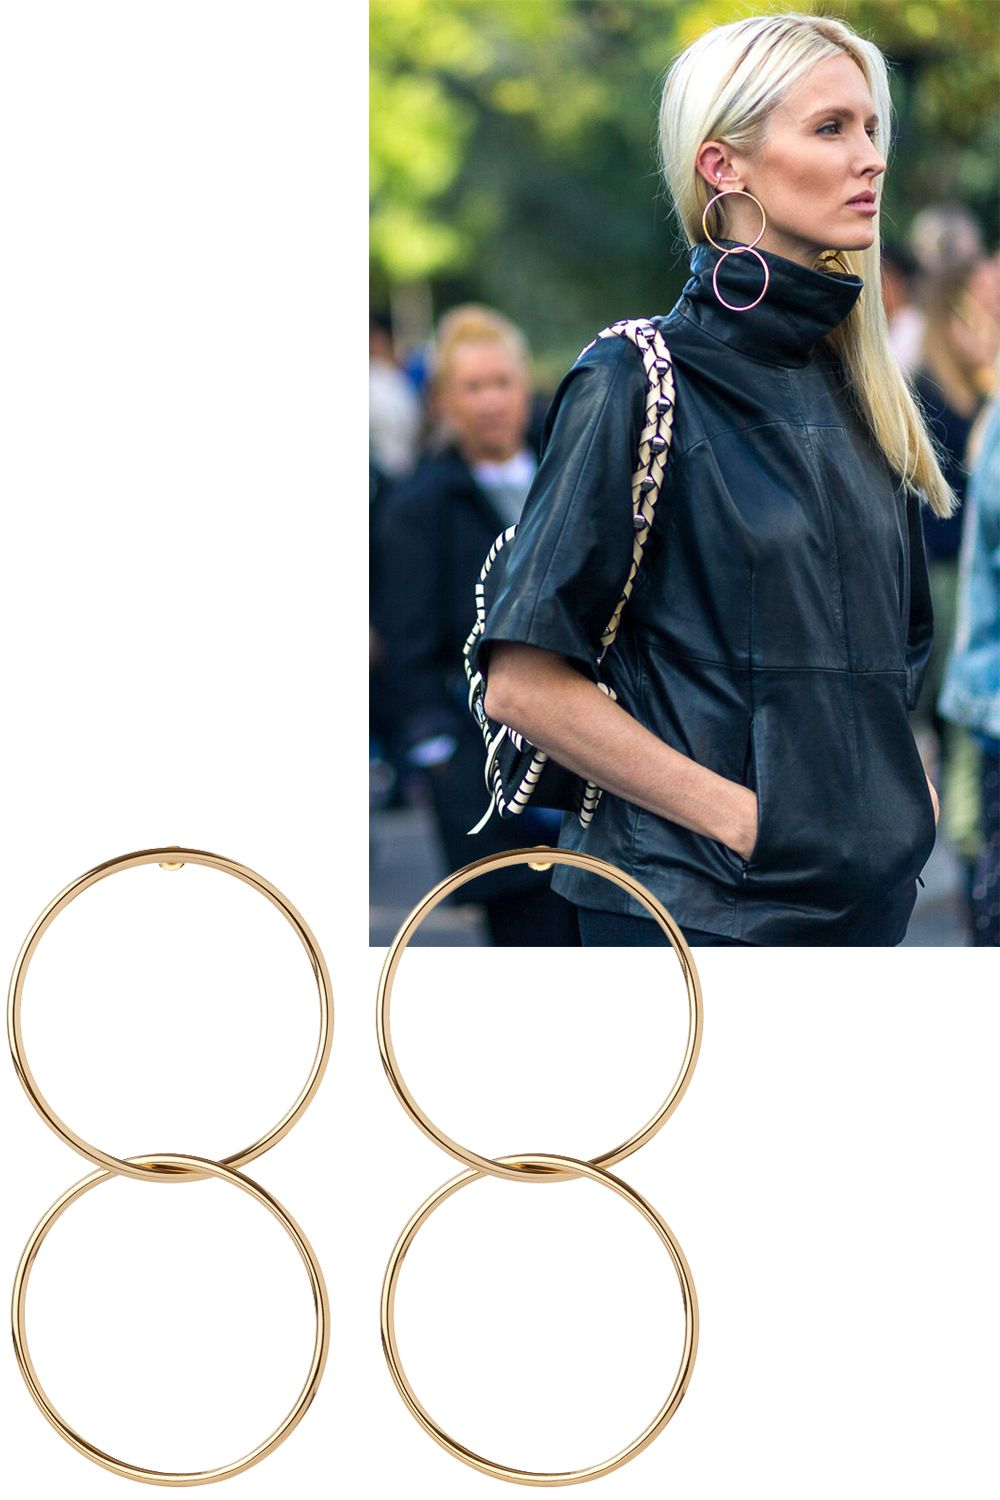 """<p>It's no secret that statement earrings are on-trend, andKate Davidson Hudson<span class=""""redactor-invisible-space"""">layered herswith a turtleneck.</span></p><p><em data-redactor-tag=""""em"""" data-verified=""""redactor"""">Jennifer Fisher earrings, $315 (pre-order), <strong data-redactor-tag=""""strong"""" data-verified=""""redactor""""><a href=""""https://shop.harpersbazaar.com/j/jennifer-fisher/interlocking-smooth-circle-earrings-9699.html"""" target=""""_blank"""">shopBAZAAR.com</a></strong>.</em></p>"""